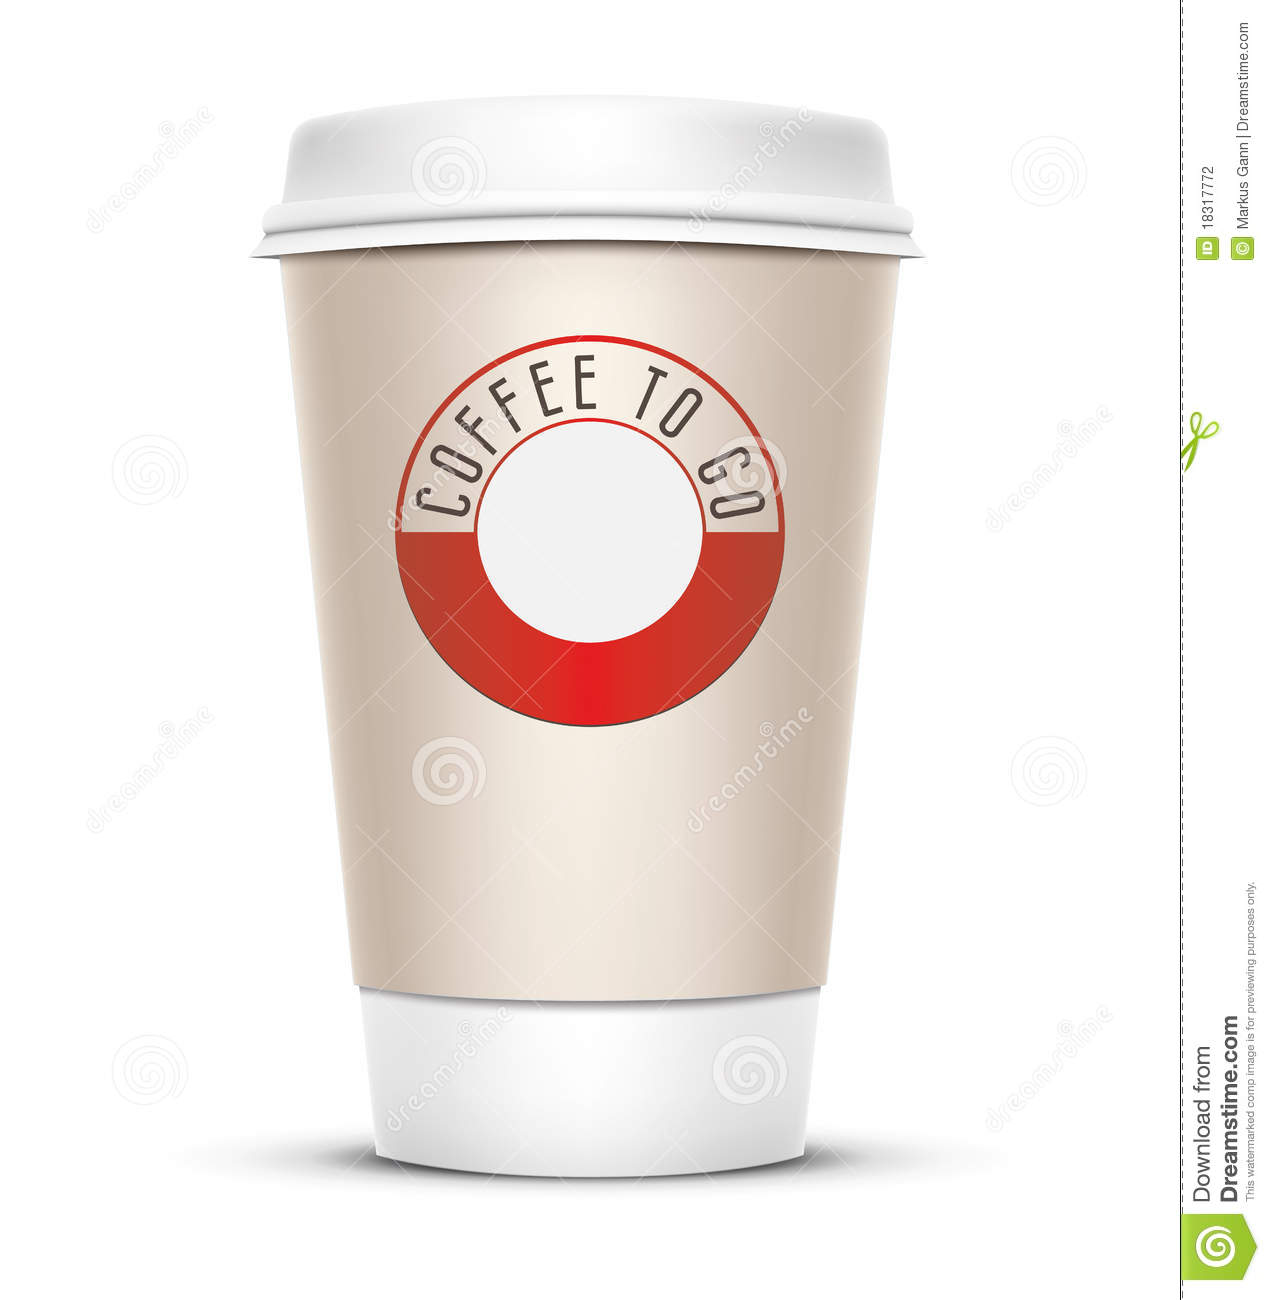 Coffee to go stock photography image 18317772 for Coffee to go